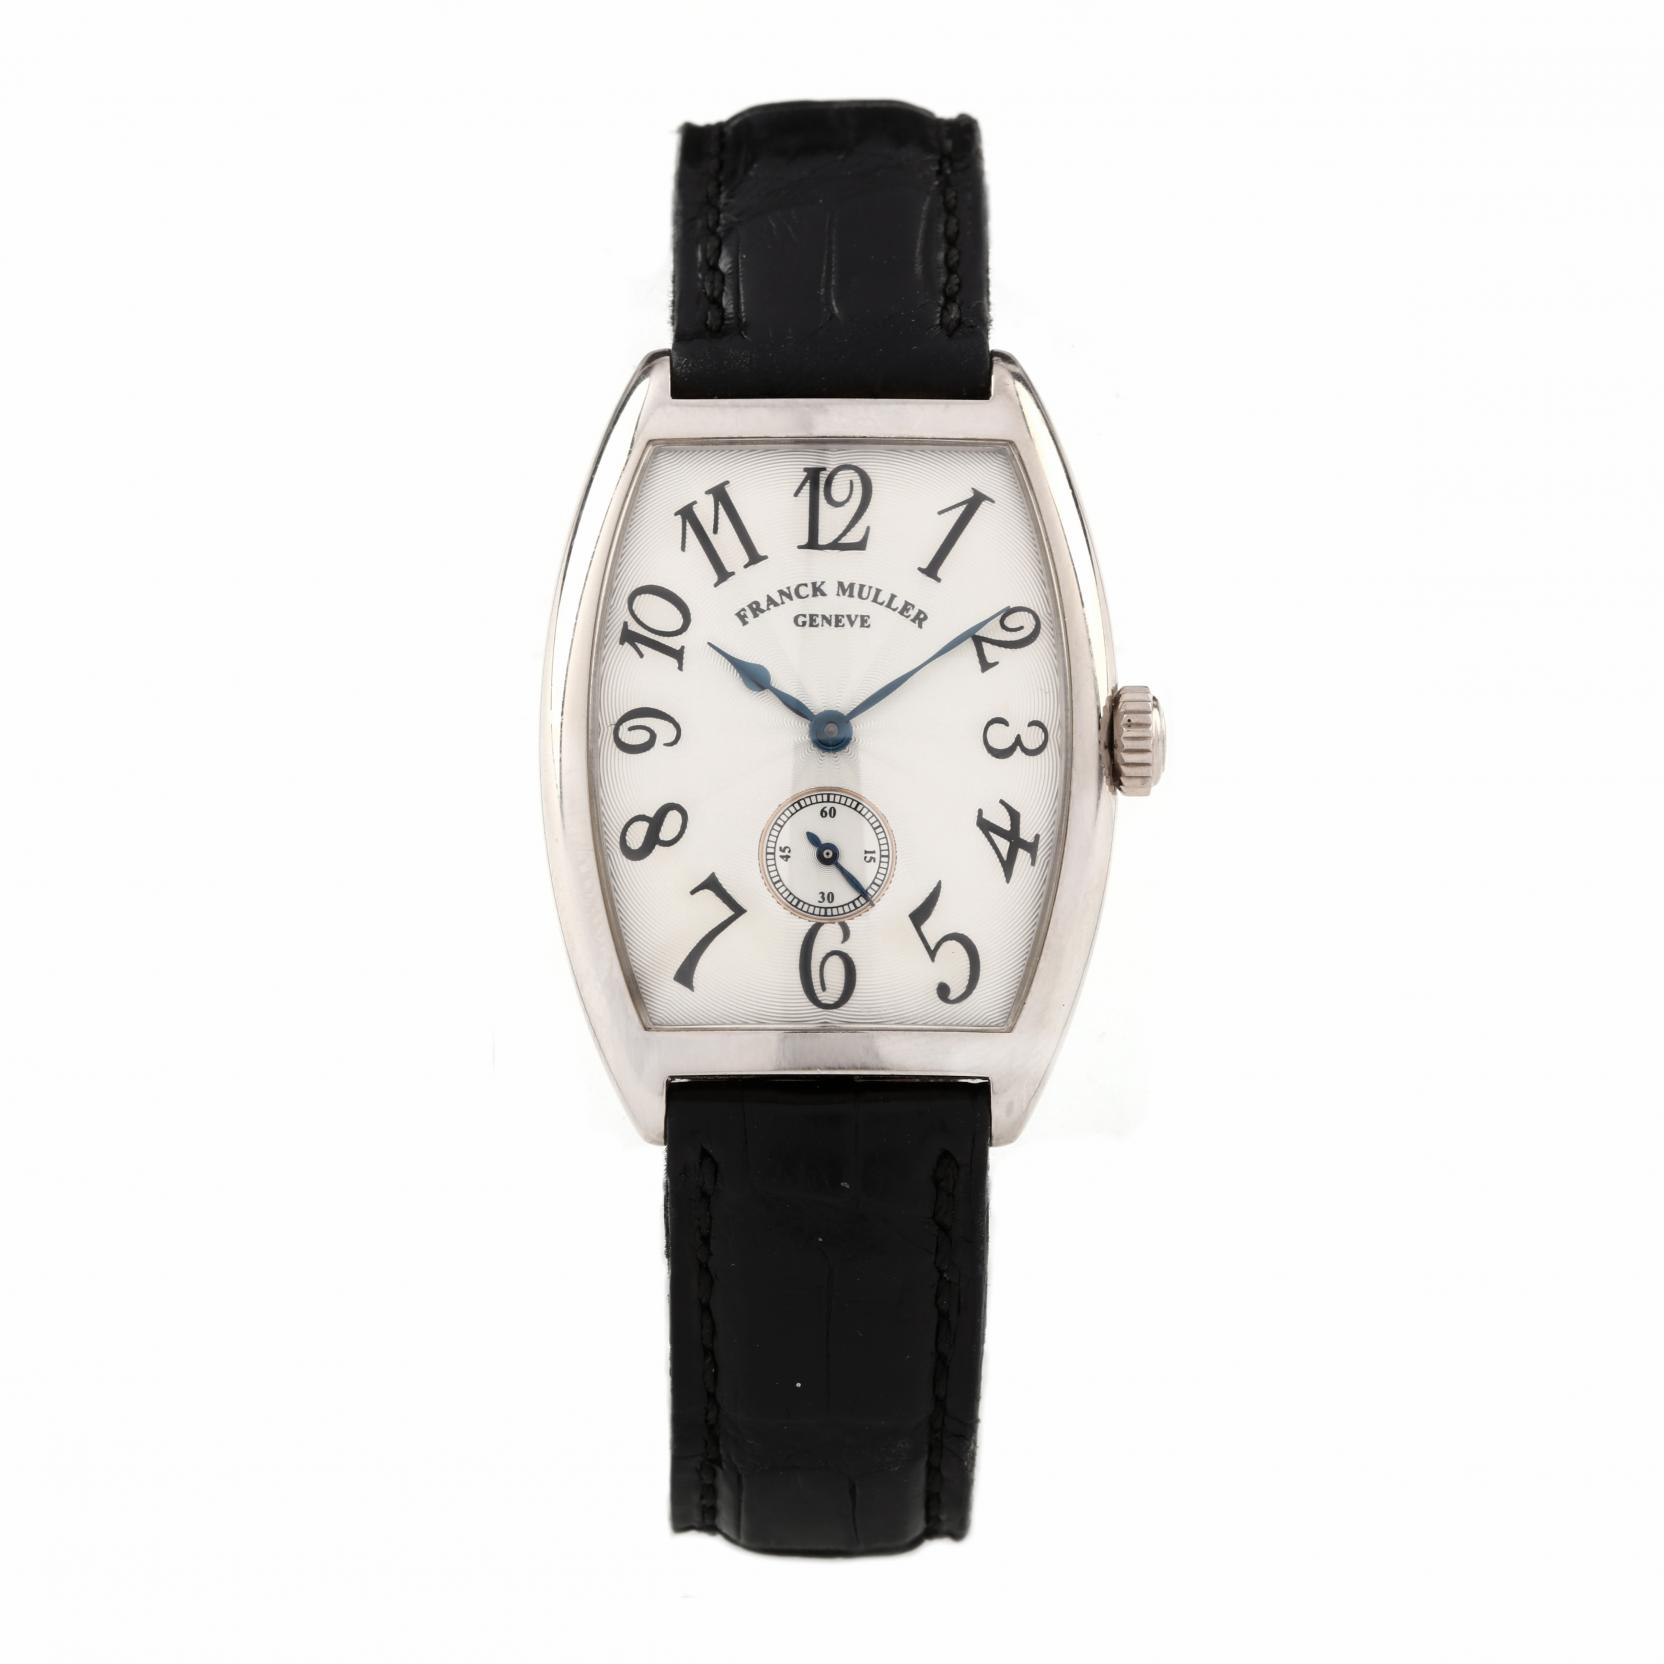 18kt-white-gold-limited-edition-cintree-curvex-watch-franck-muller